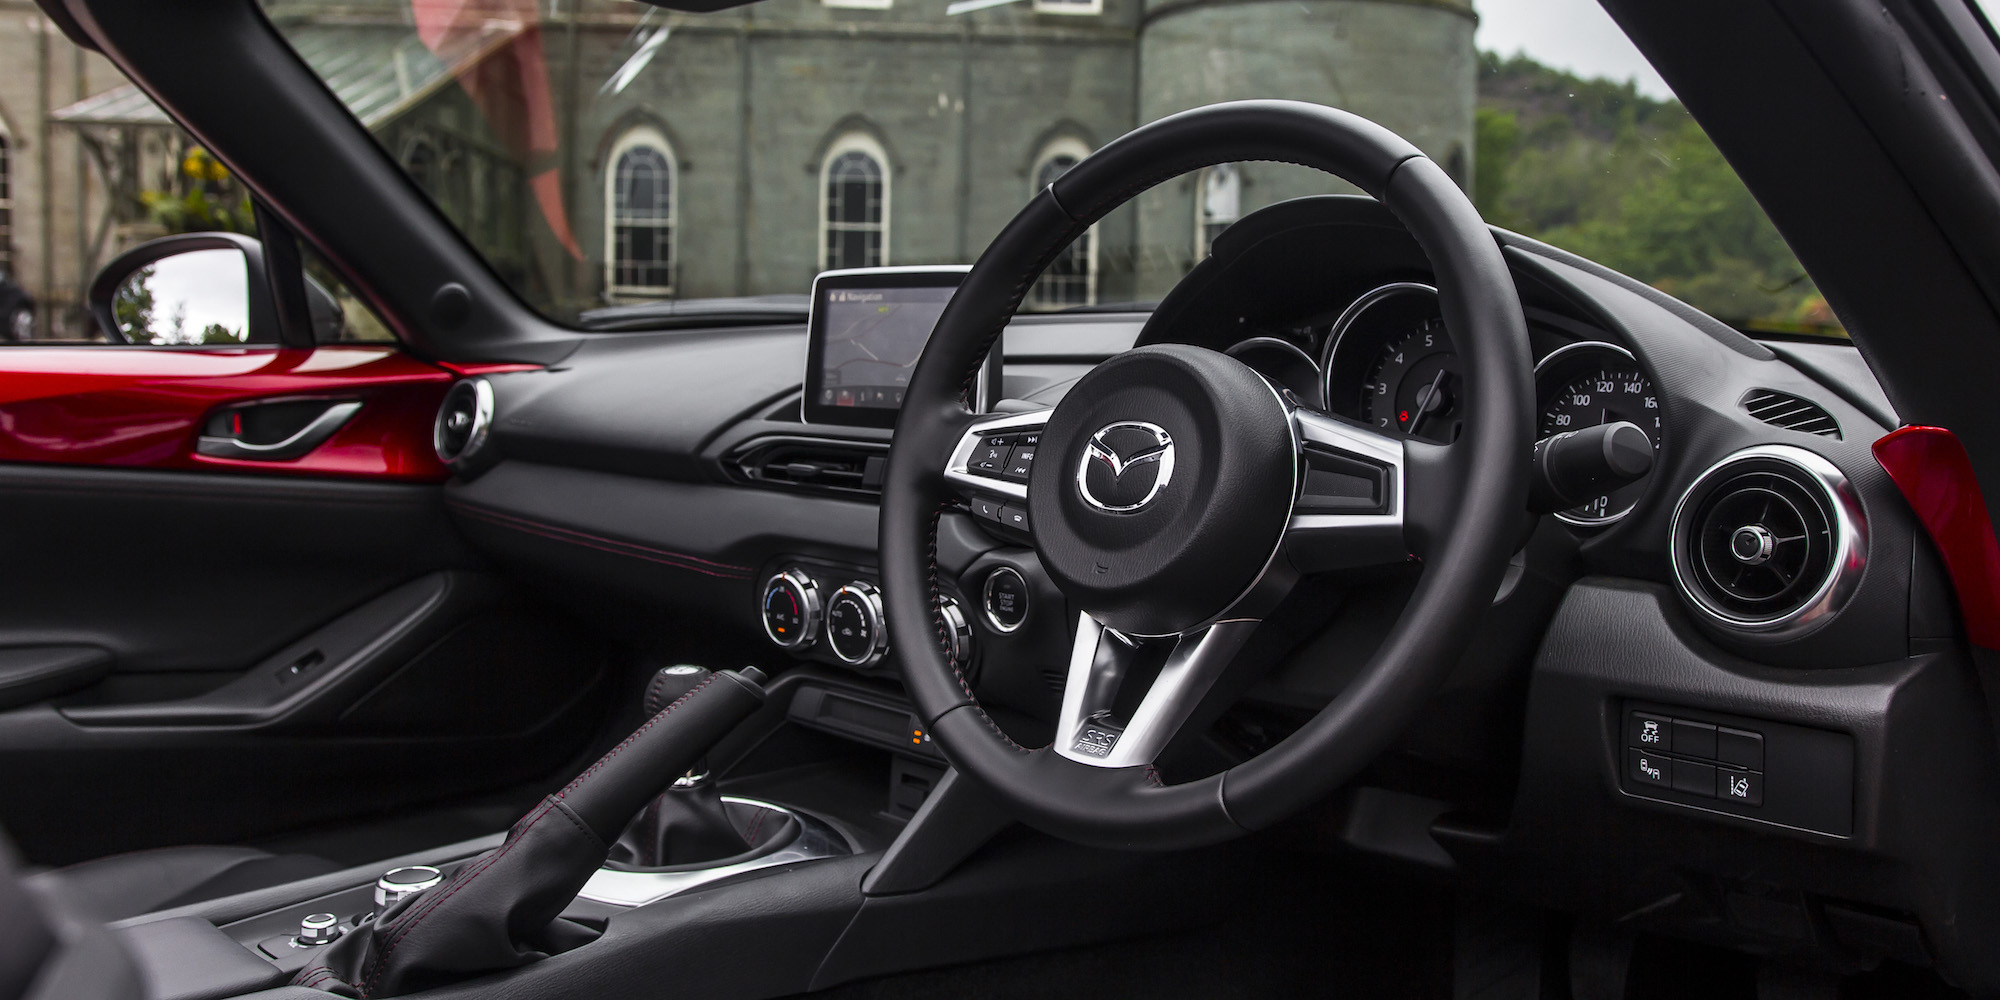 2016 Mazda Mx 5 Cockpit Interior (Photo 15 of 31)